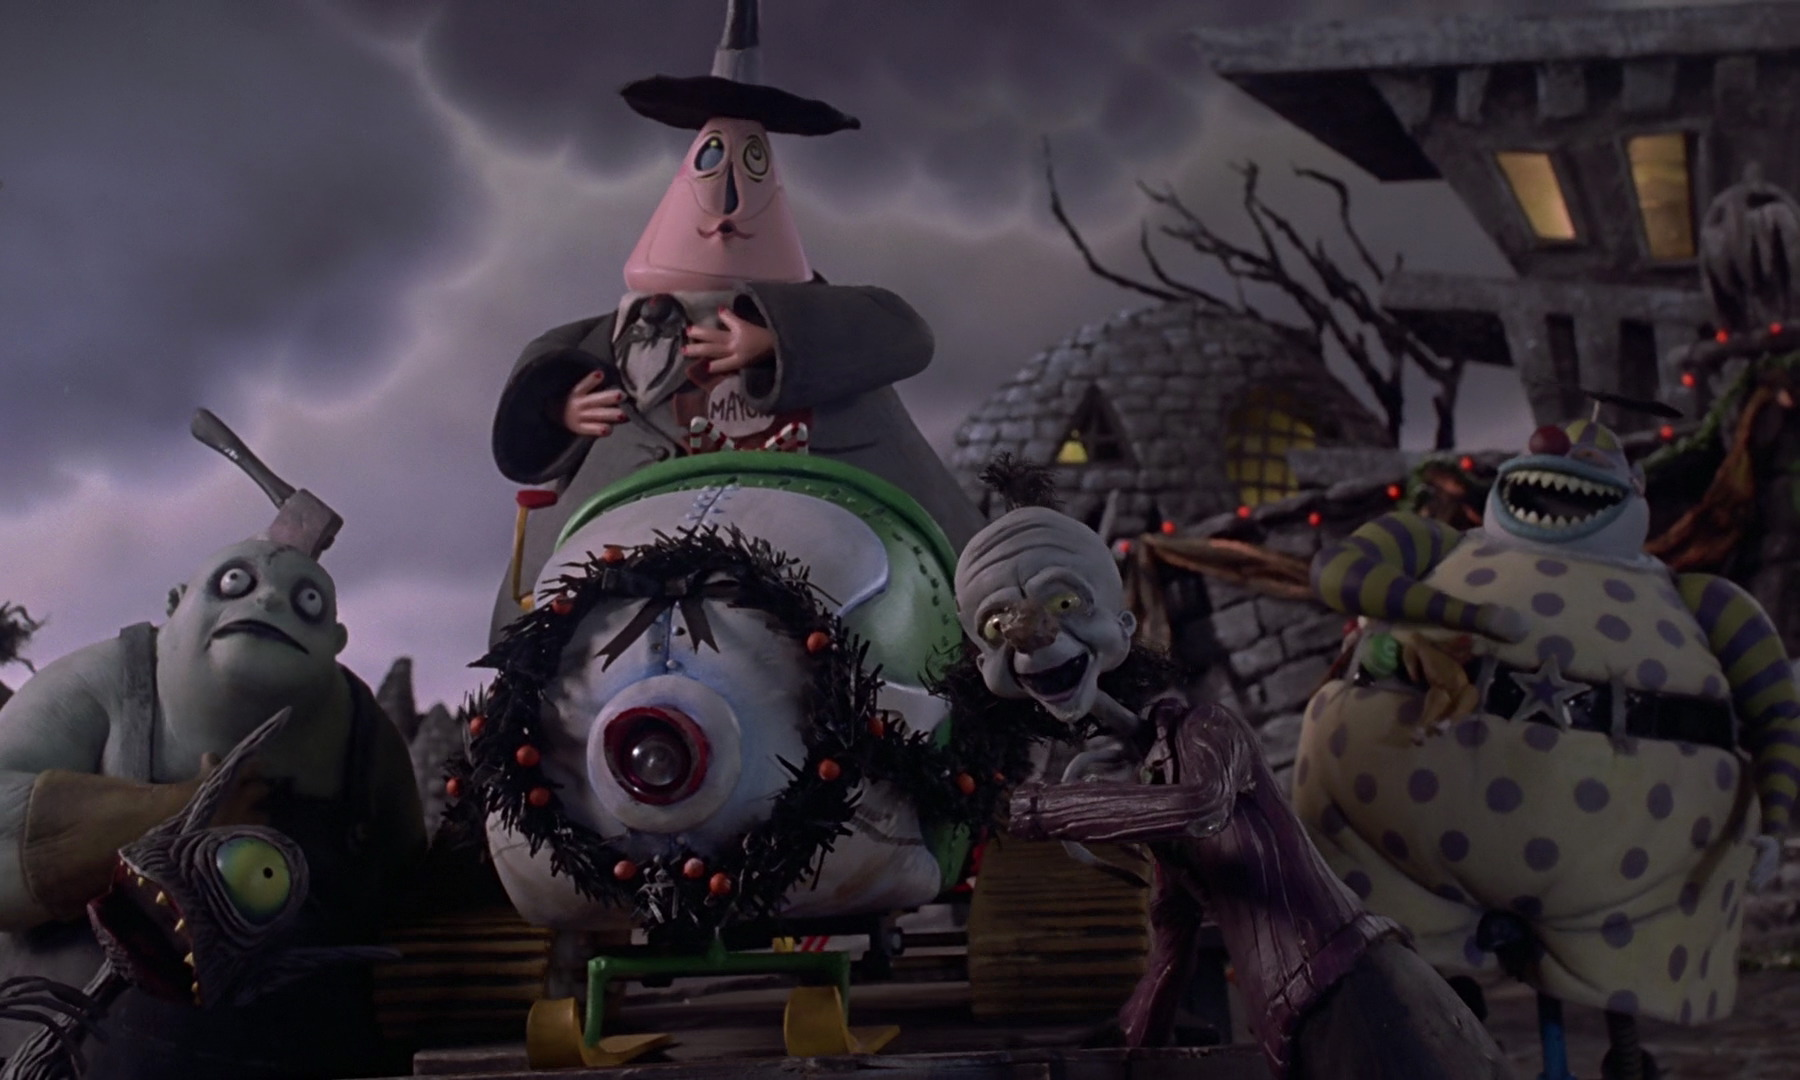 making christmas - Making Of Nightmare Before Christmas